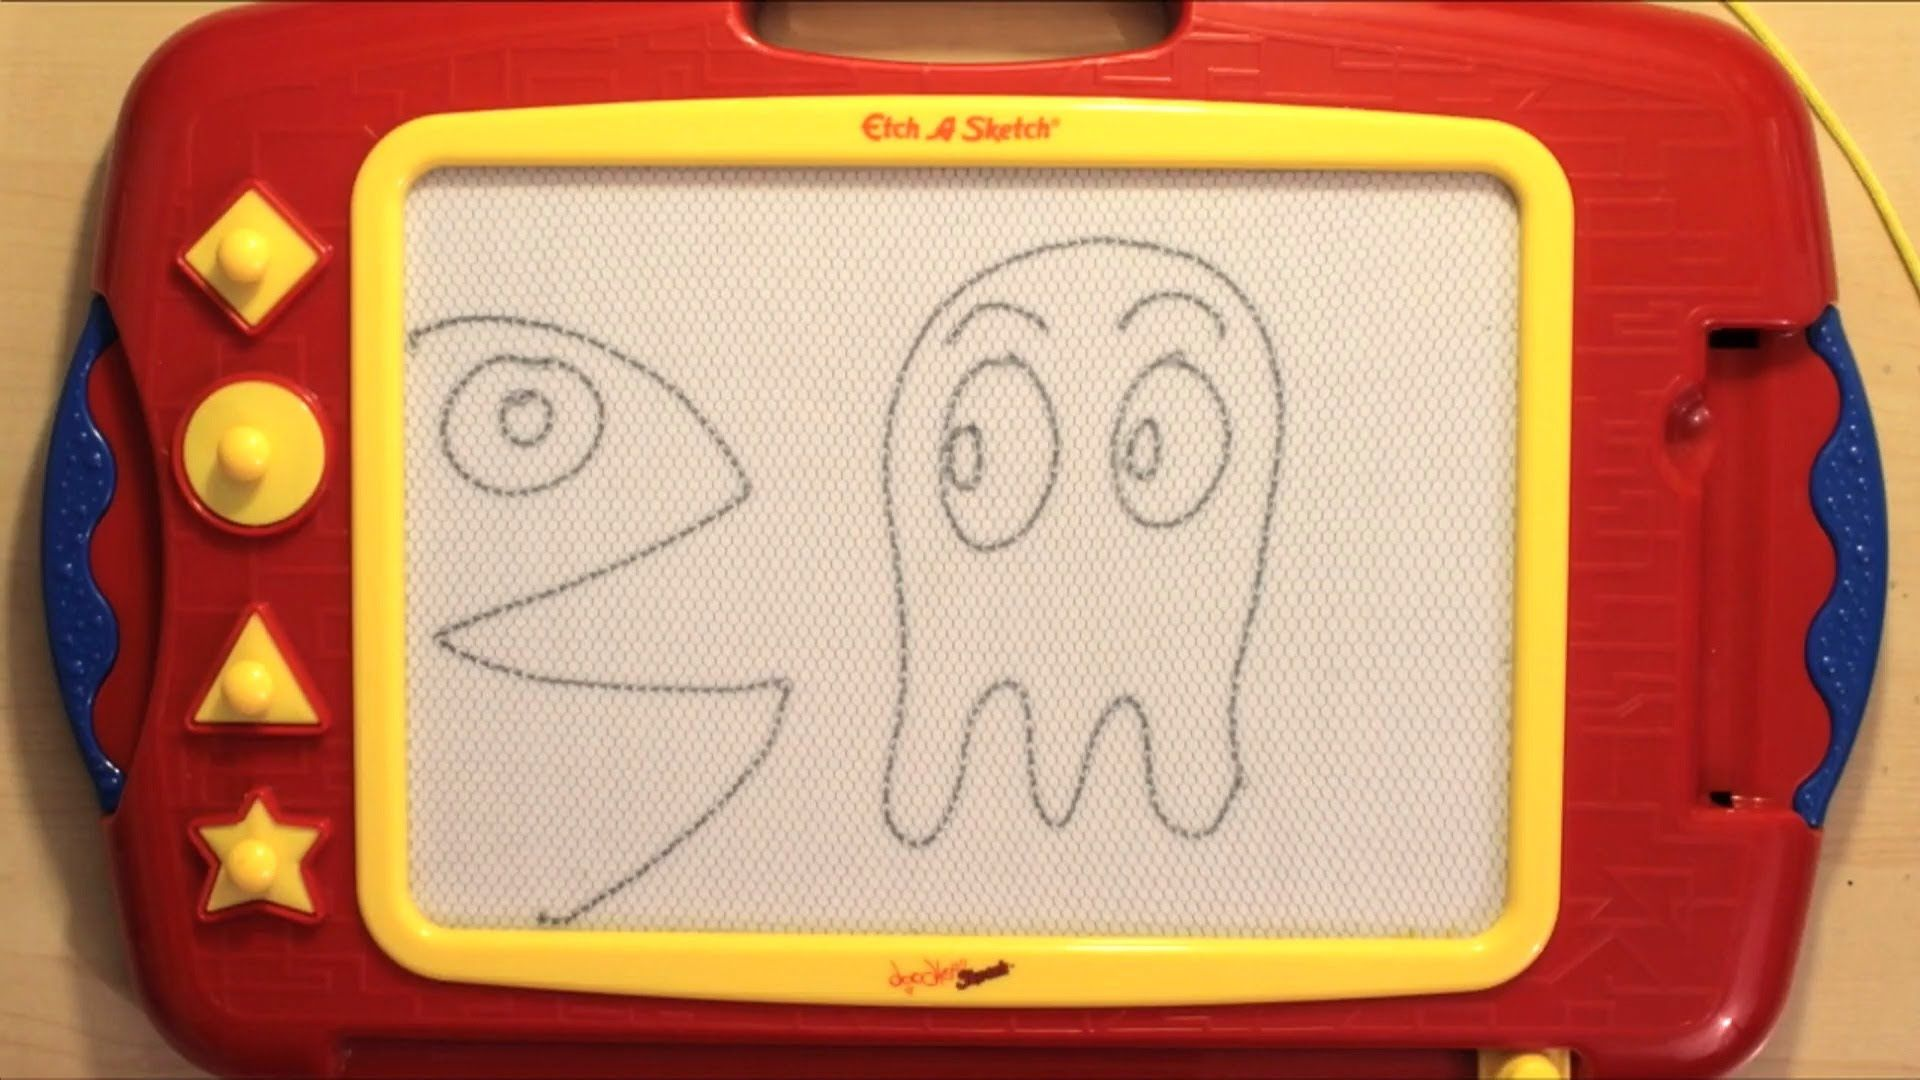 Fun with etch a sketch doodle sketch animation and